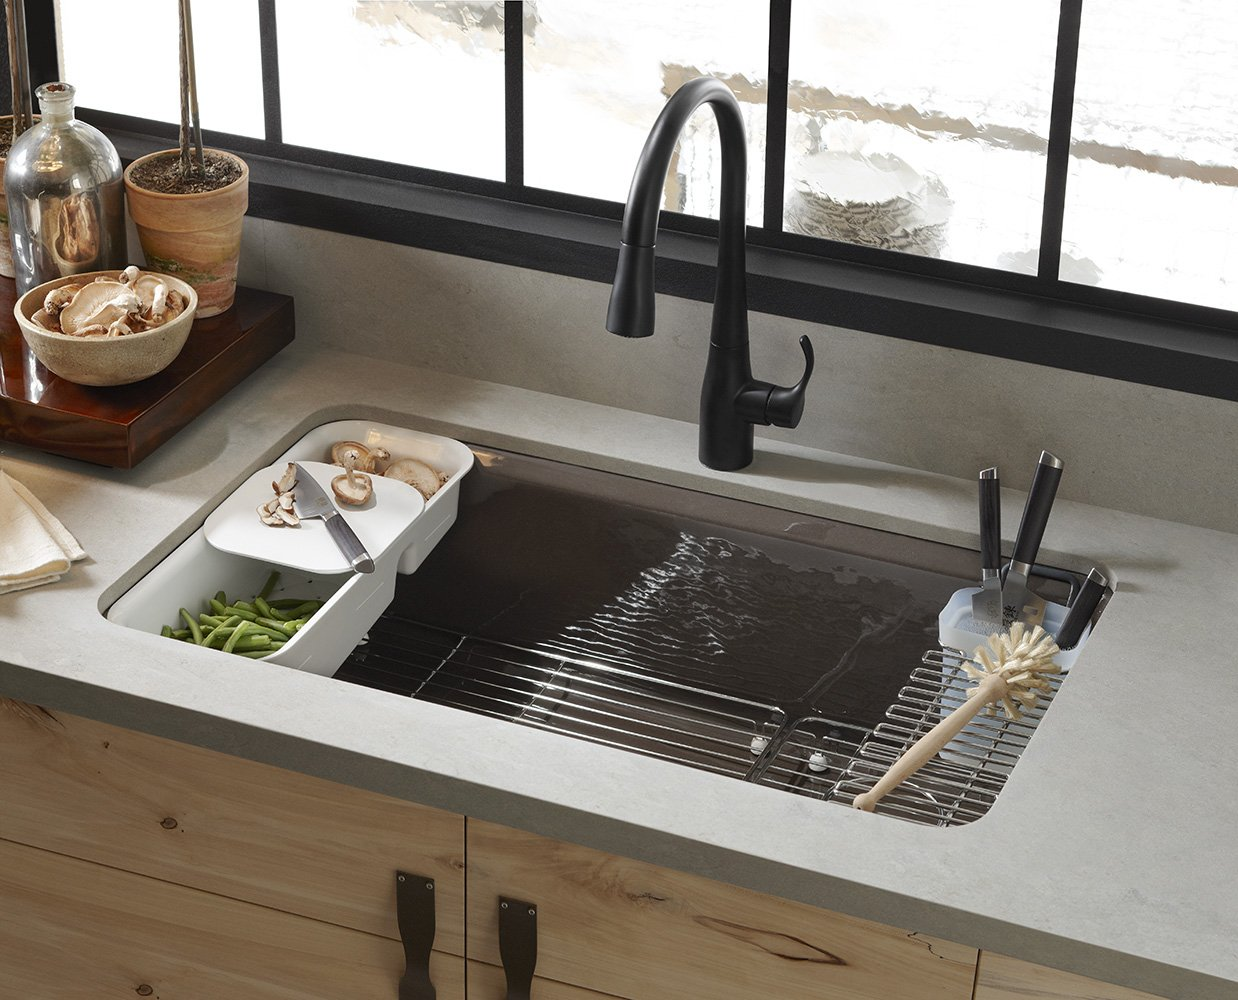 KOHLER K 5871 5UA3 K4 Riverby Single Bowl Undermount Kitchen Sink, Cashmere      Amazon.com